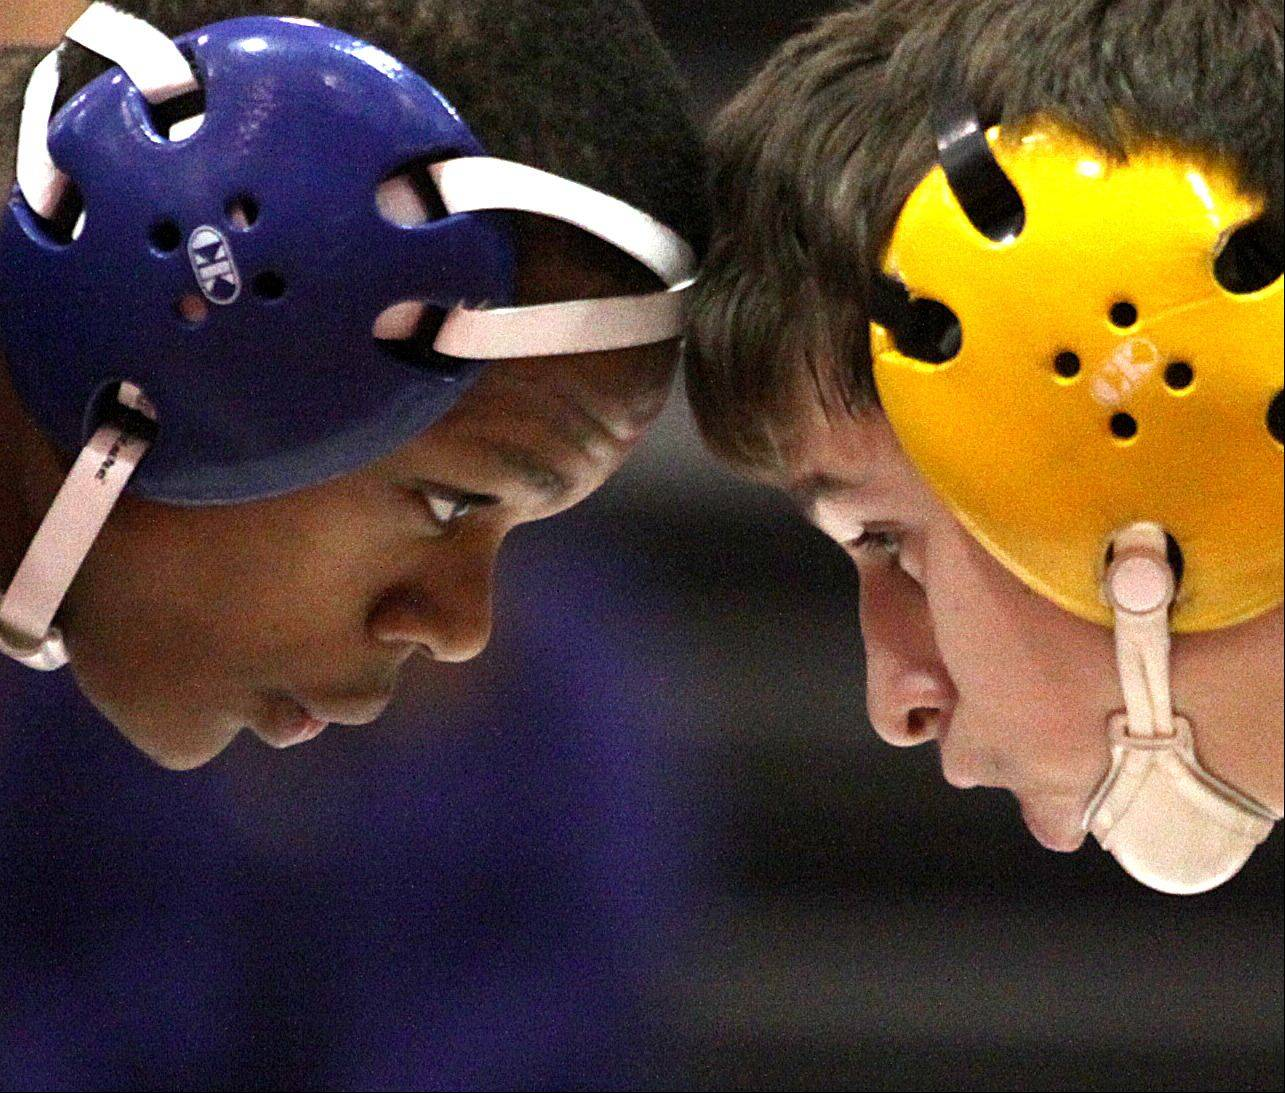 Dundee-Crown's Taborist Robinson, left, faces off with Jacobs' Jake Orth, right, during their 132-pound match in Carpentersville on Thursday night. Orth won the match.